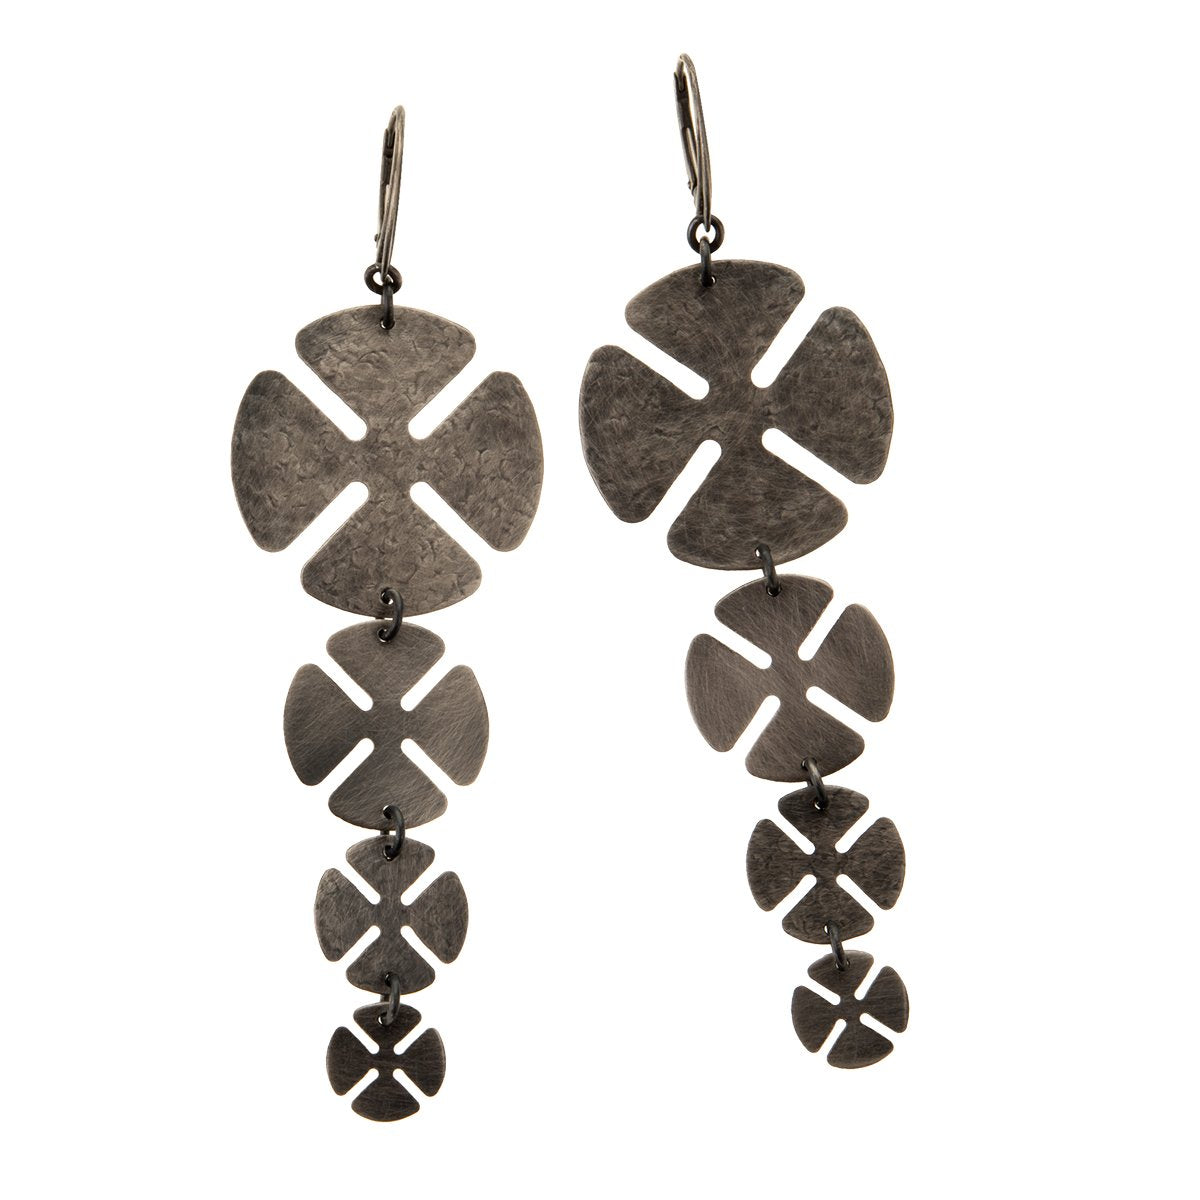 Earrings from Eternal collection - EK34-7